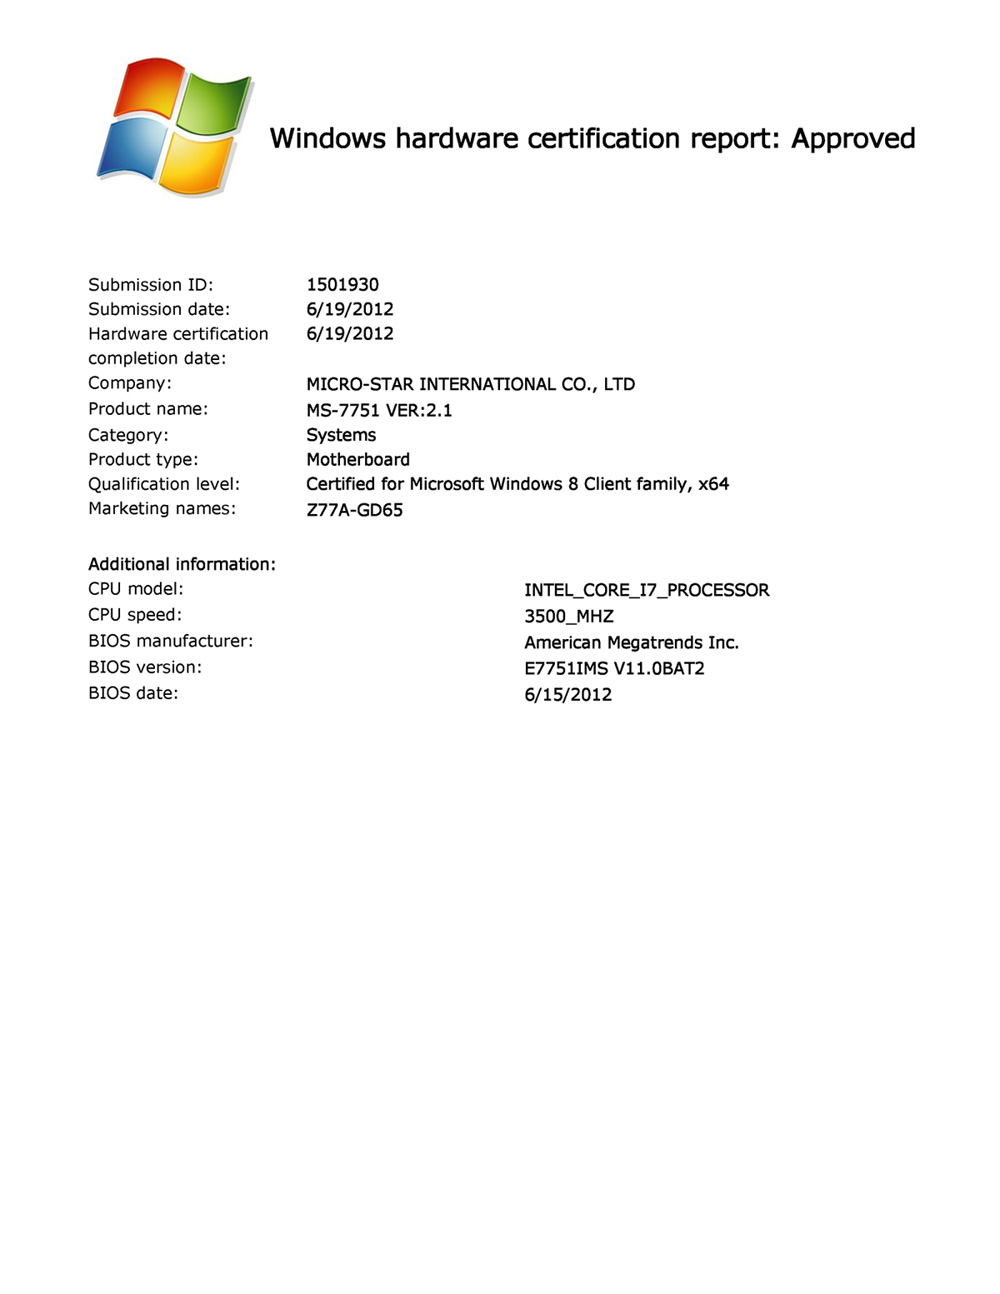 Msis mainboards officially certified for windows 8 1betcityfo Image collections